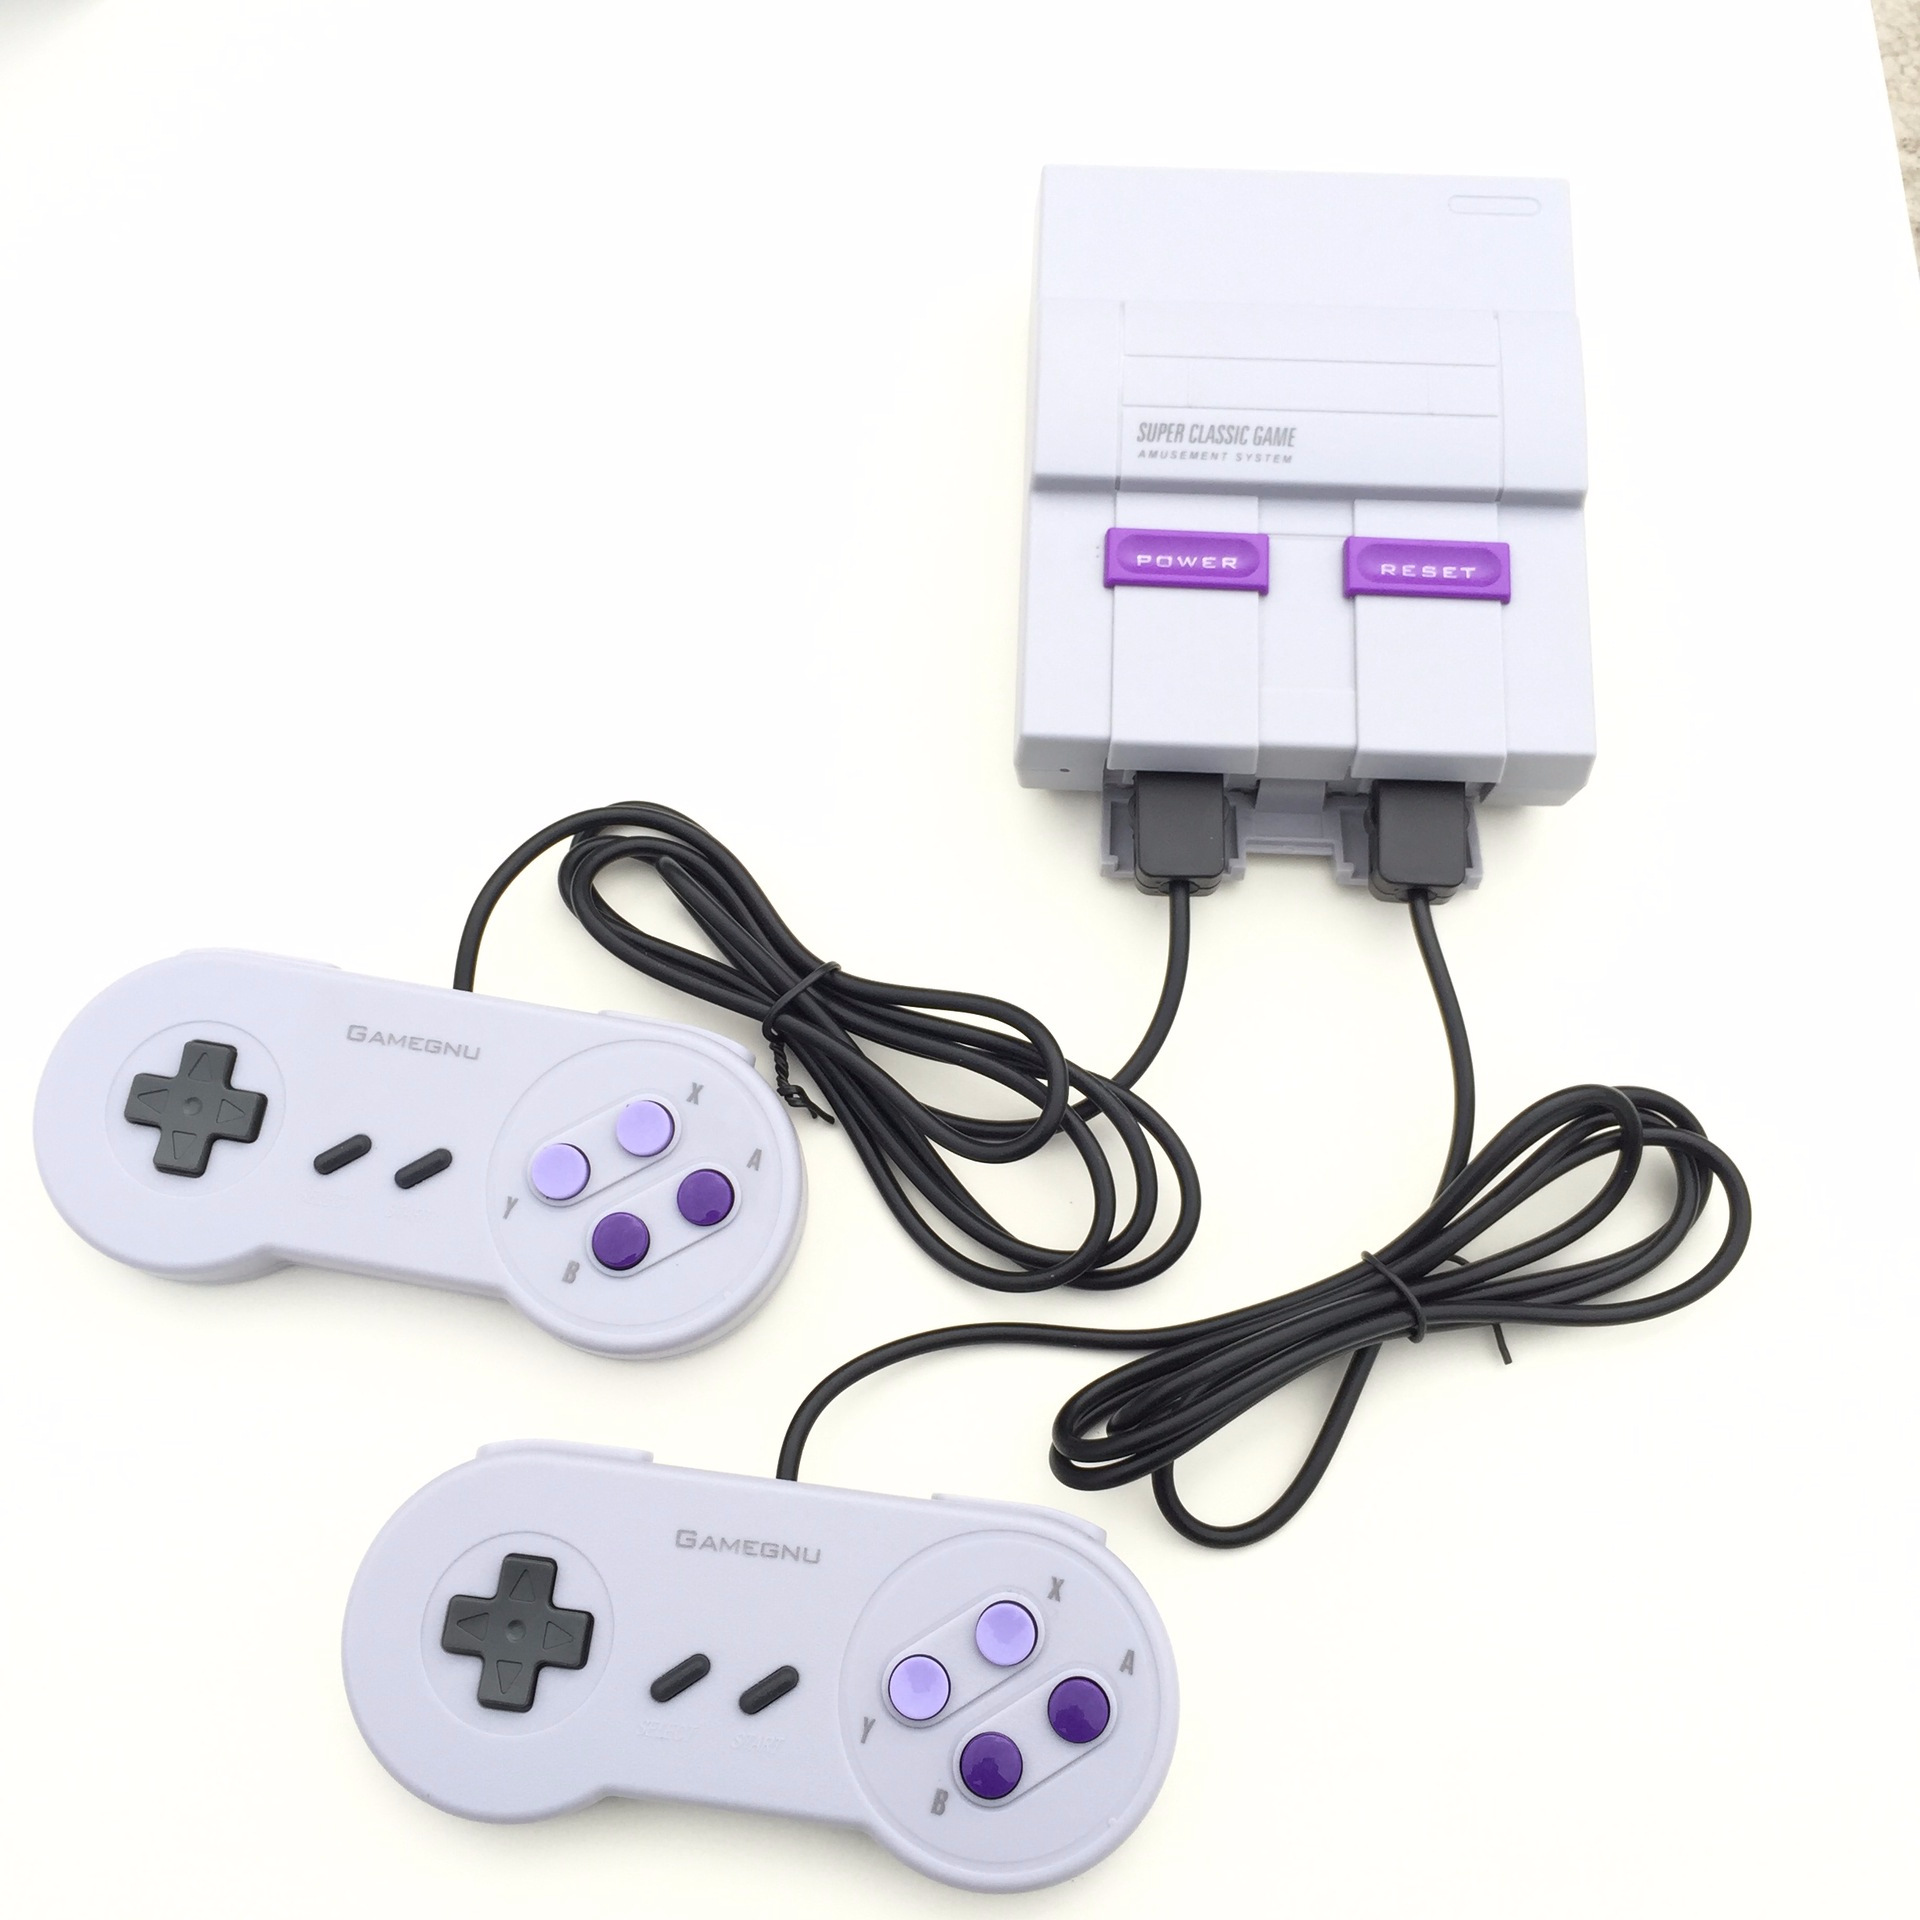 Classic Game Mini TV 8 Bit Family TV Video Game Console Built-in 620 Games Handheld Gaming Player